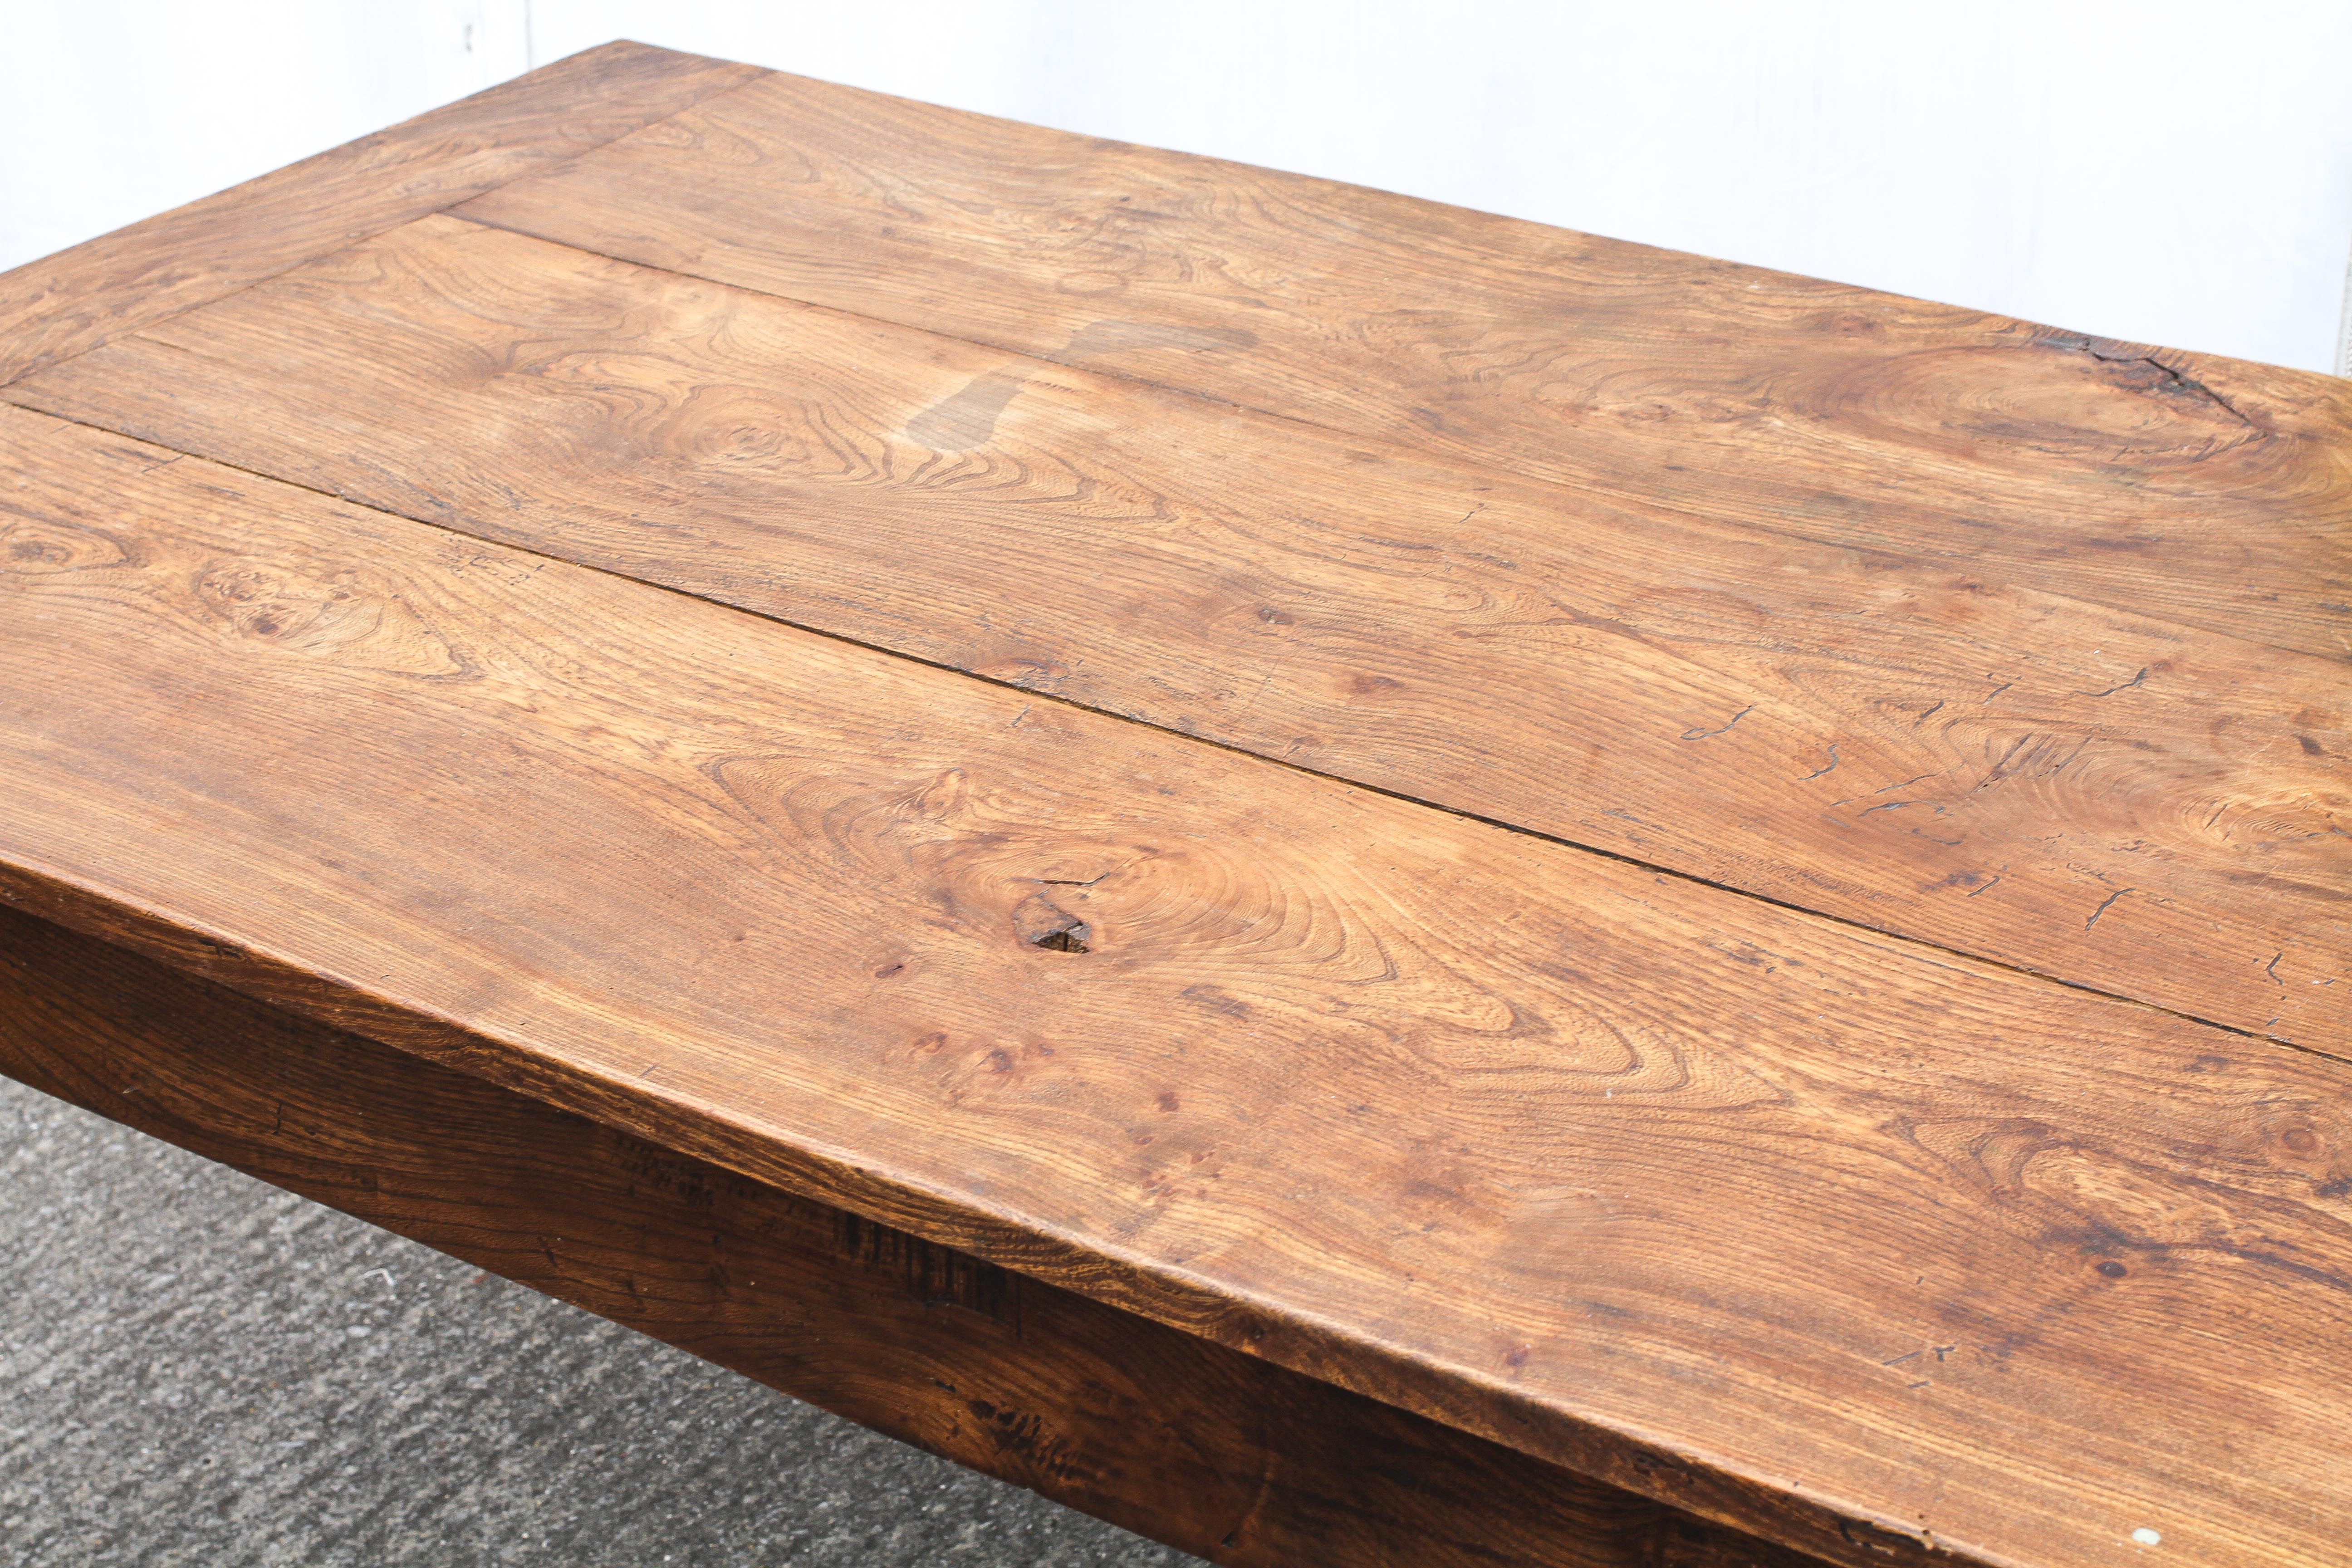 An elm refectory table, possibly French, the cleated, - Image 2 of 5